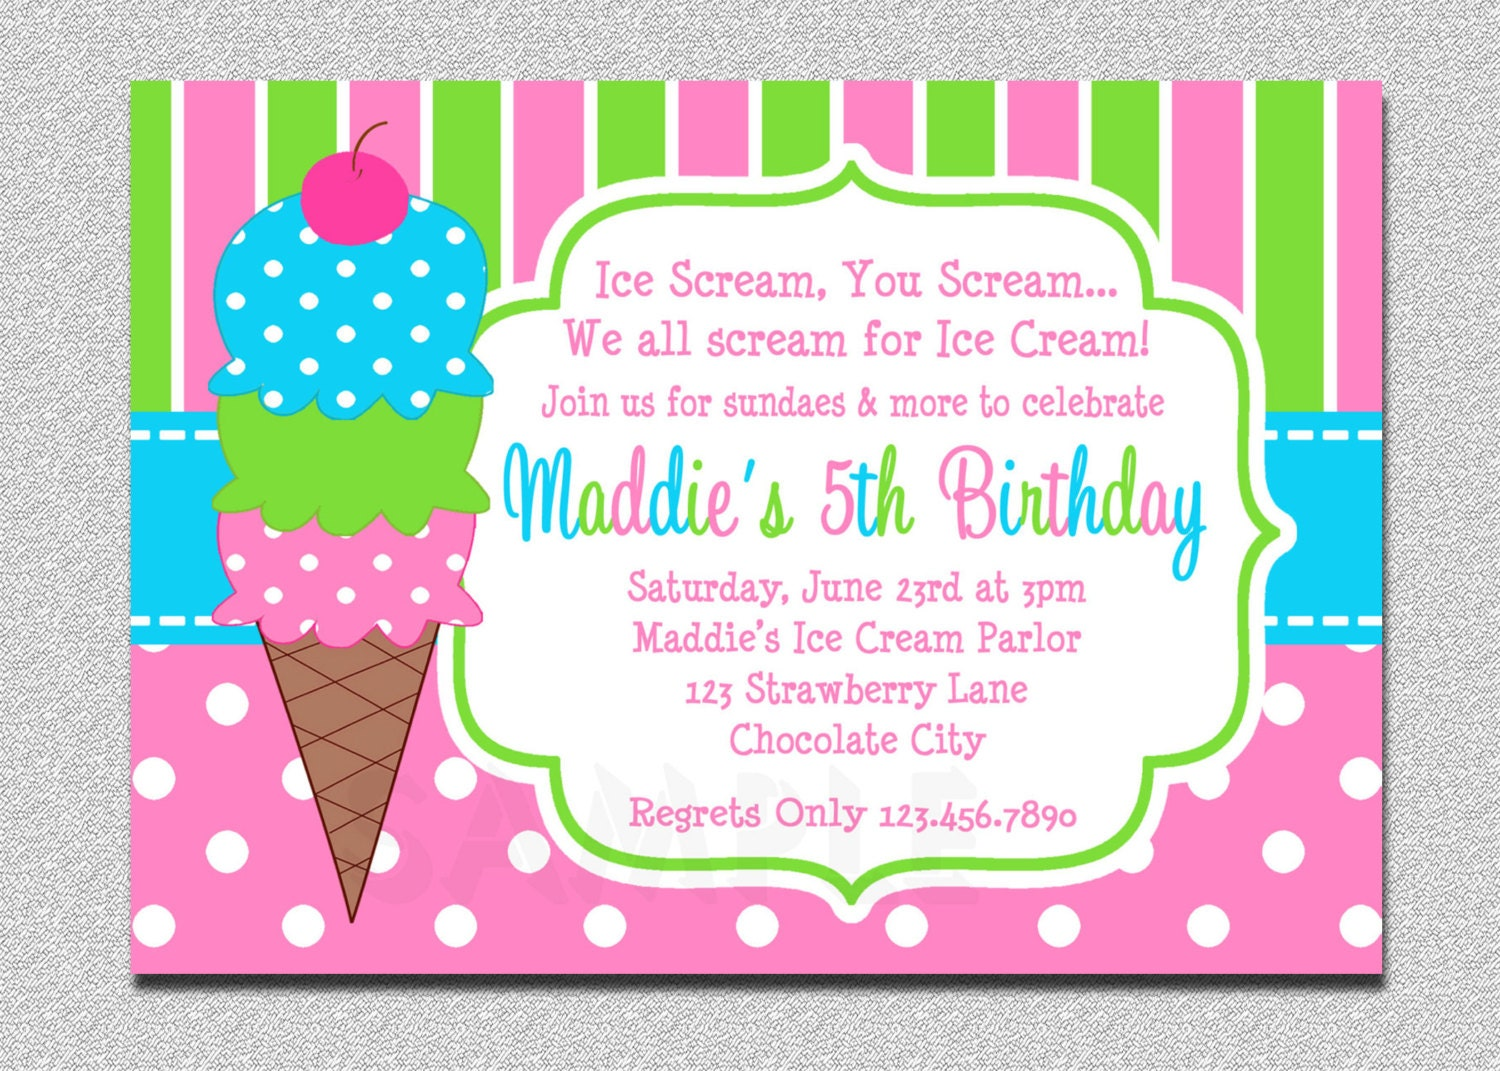 Ice Cream Birthday Invitations Pink and Green Ice Cream